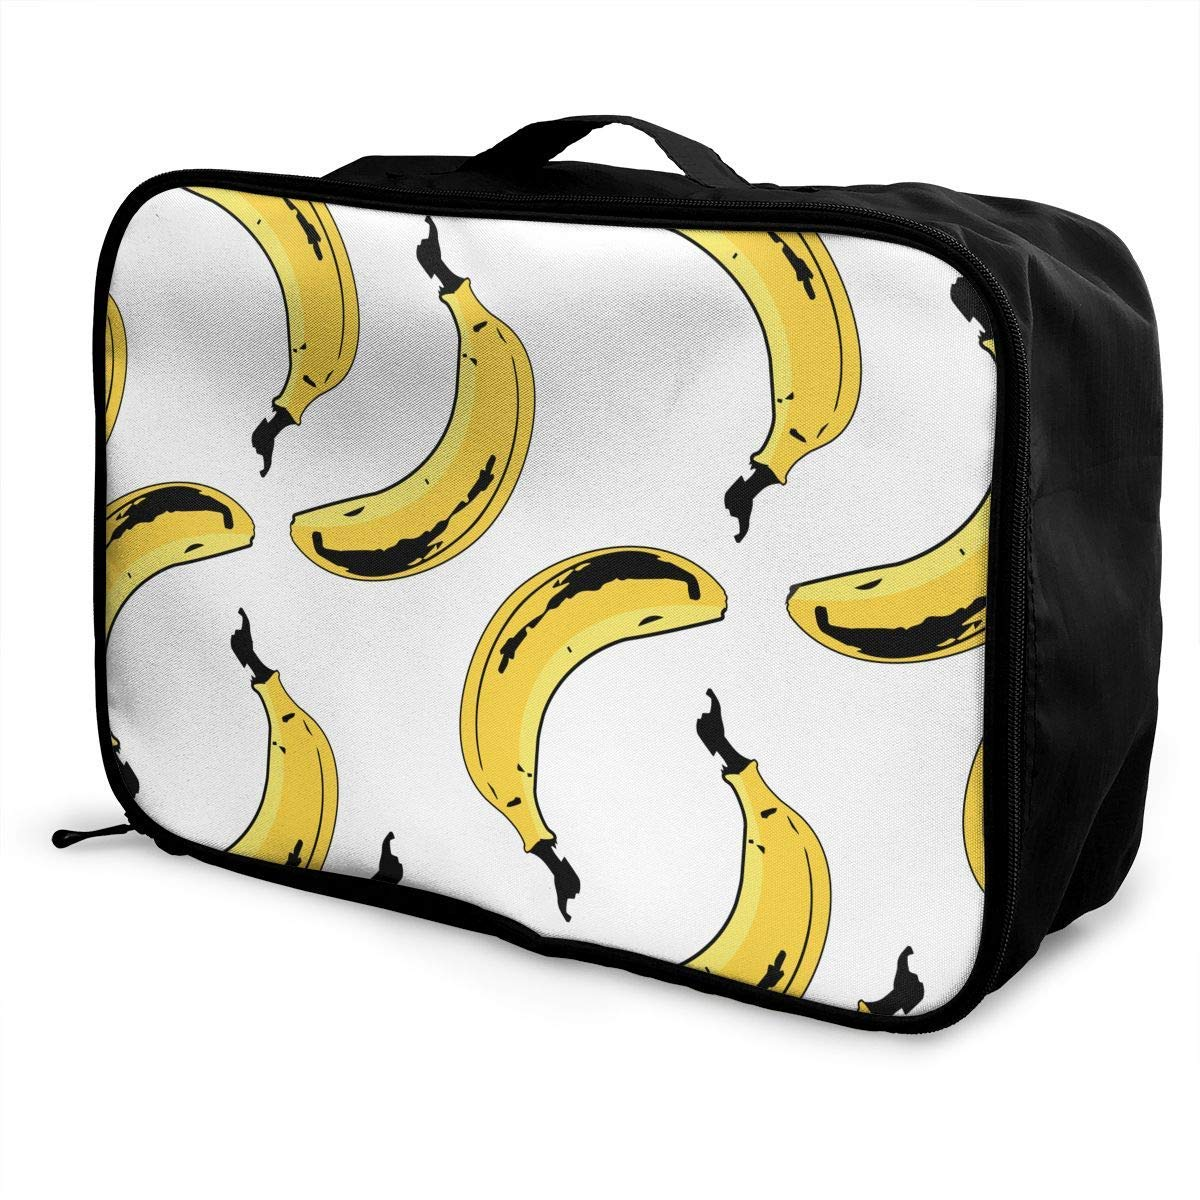 JTRVW Luggage Bags for Travel Lightweight Large Capacity Portable Duffel Bag for Men /& Women Bananas Seamless Pattern Travel Duffel Bag Backpack